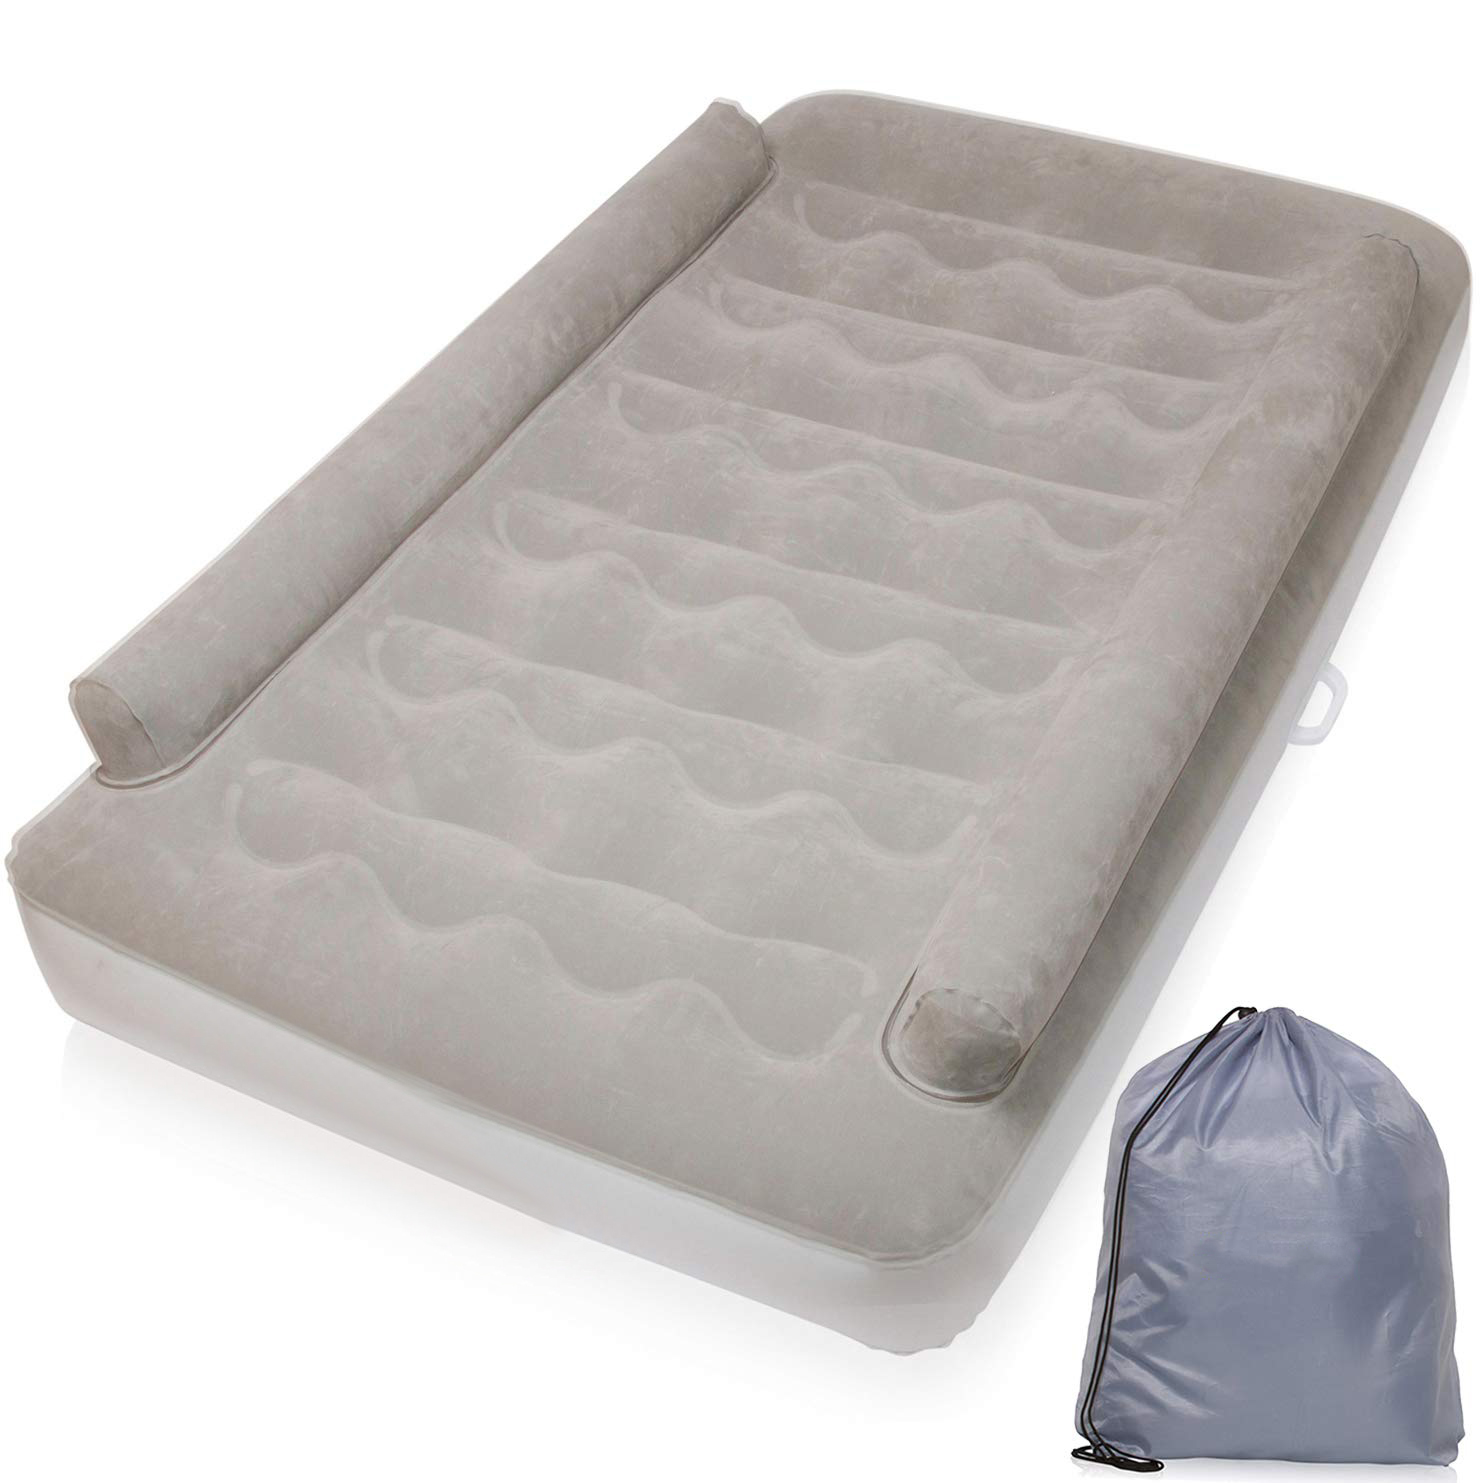 2019 New Kids Air Mattress With Sides Rails Inflatable ...